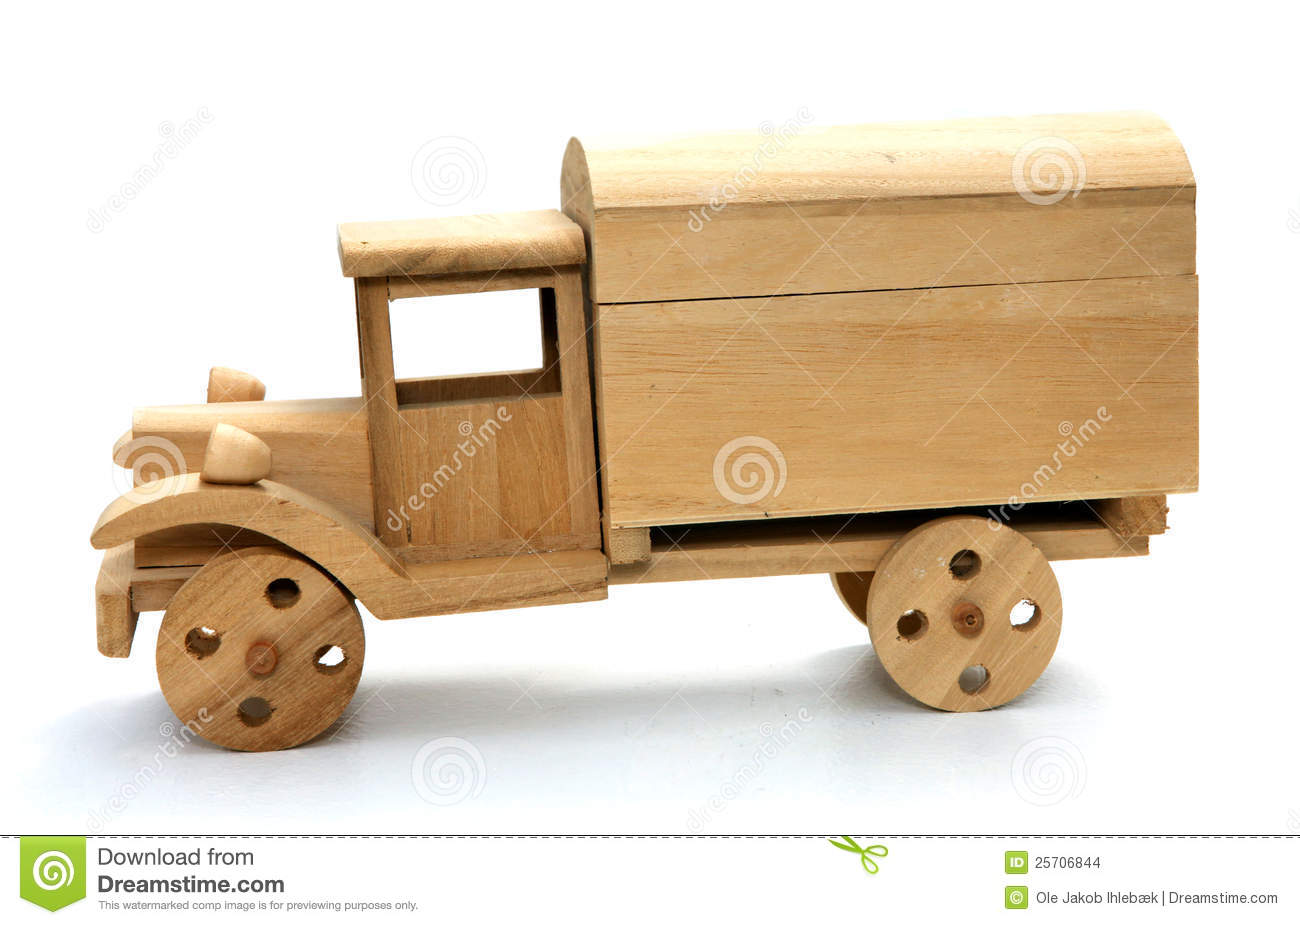 Permalink to how to make a wooden toy box